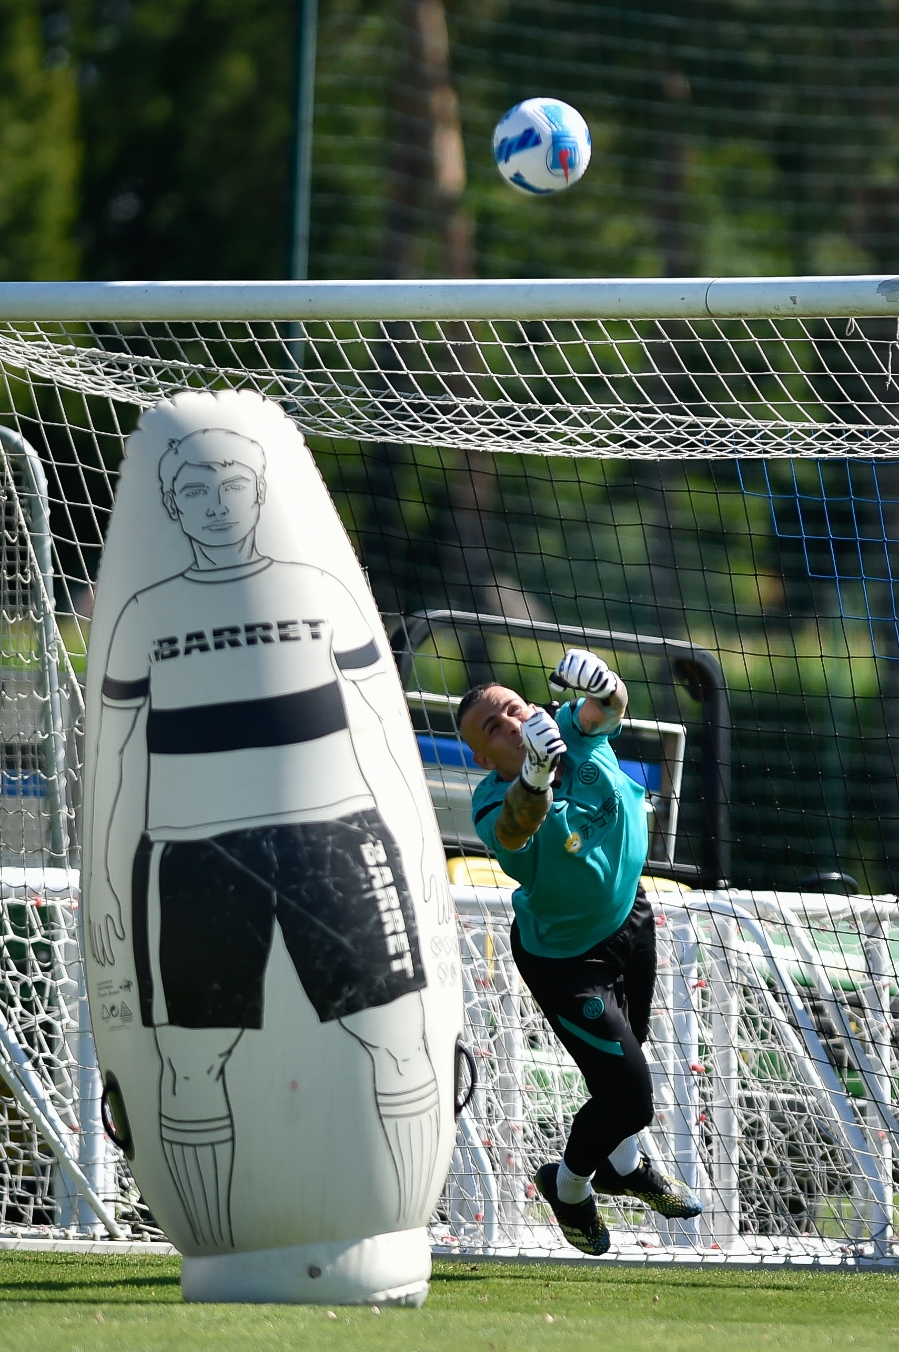 Fourth day of training in Appiano Gentile ahead of the new season